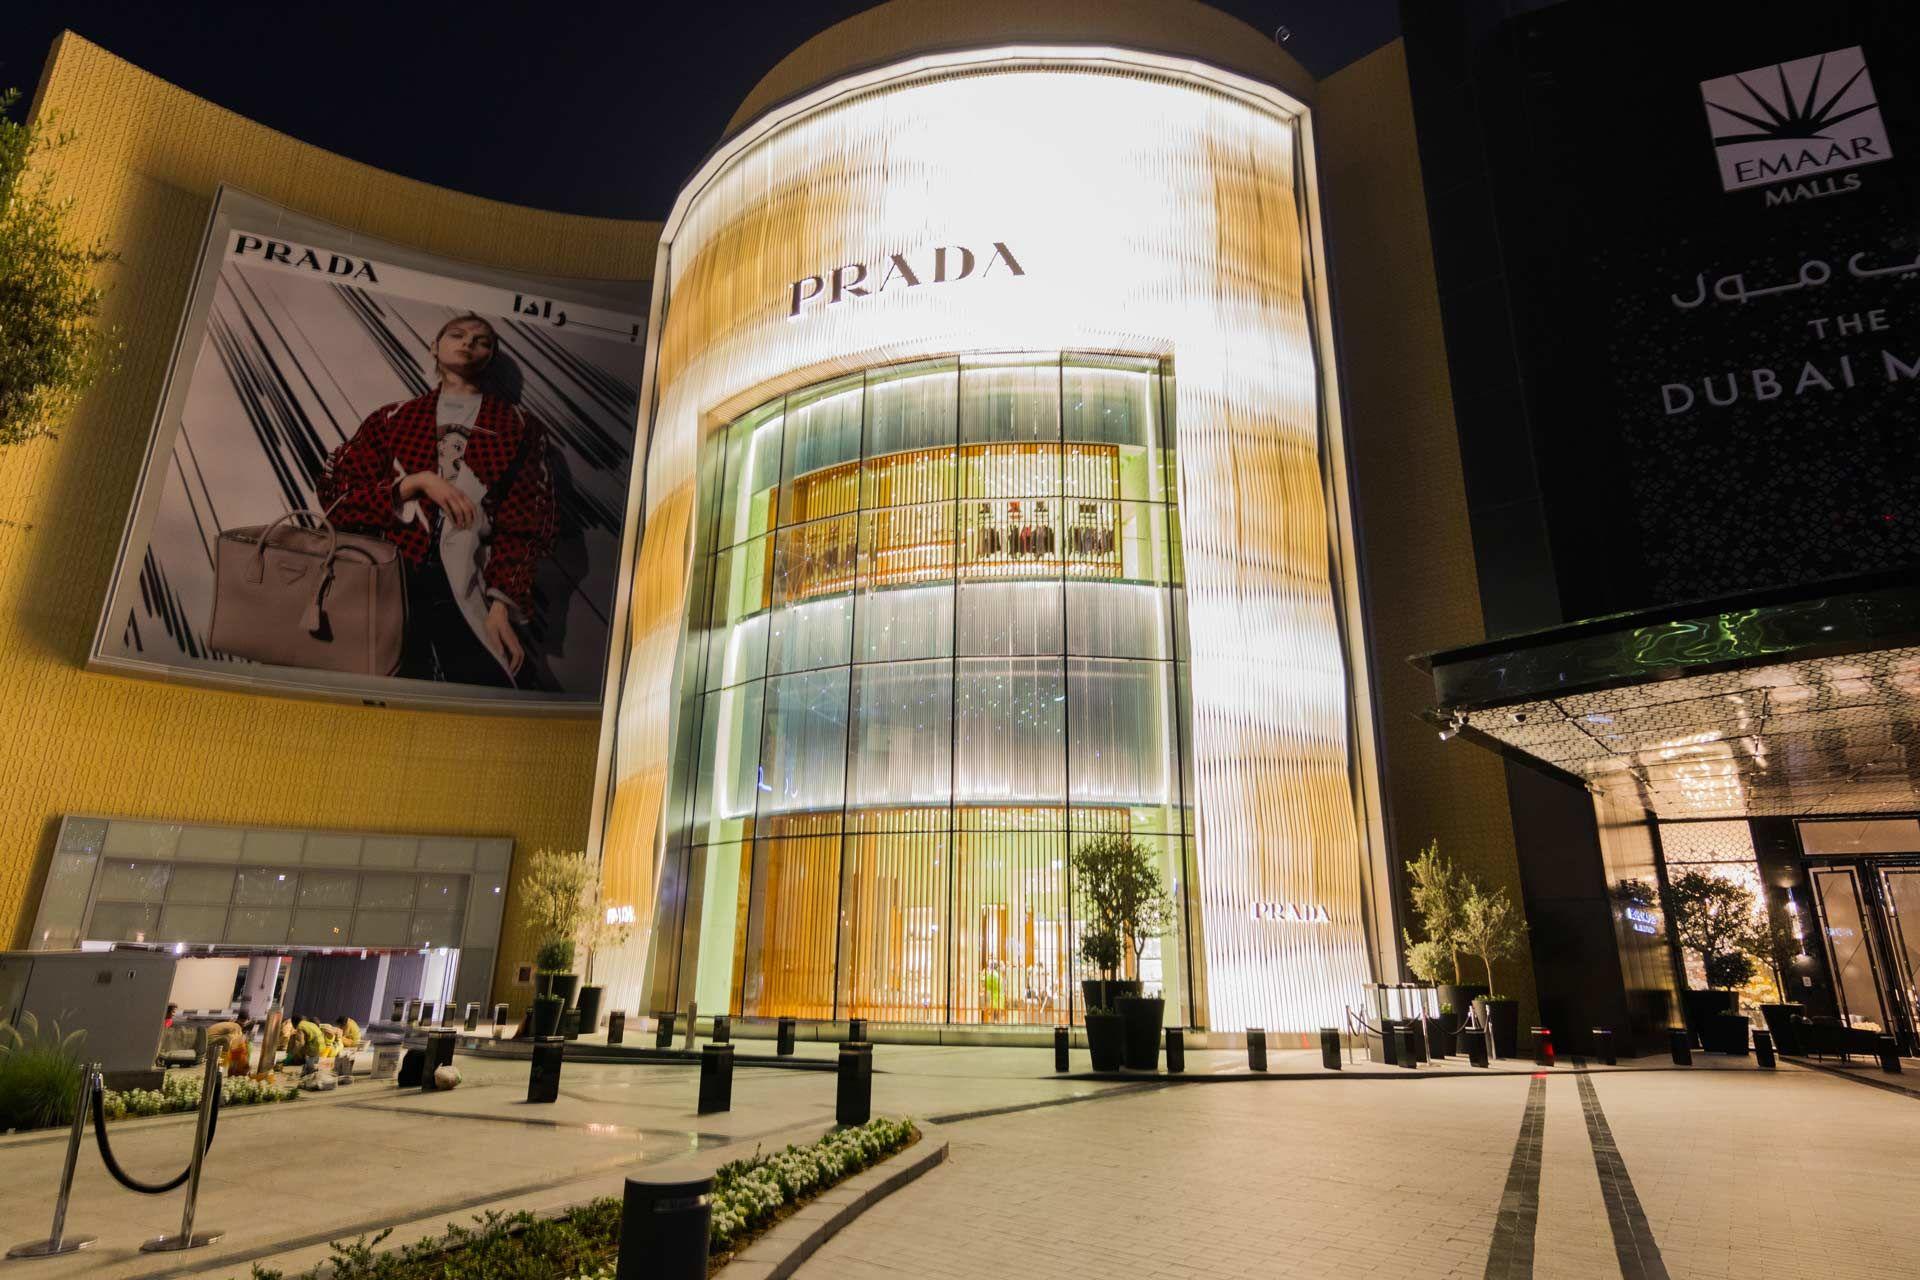 Prada at Dubai Mall